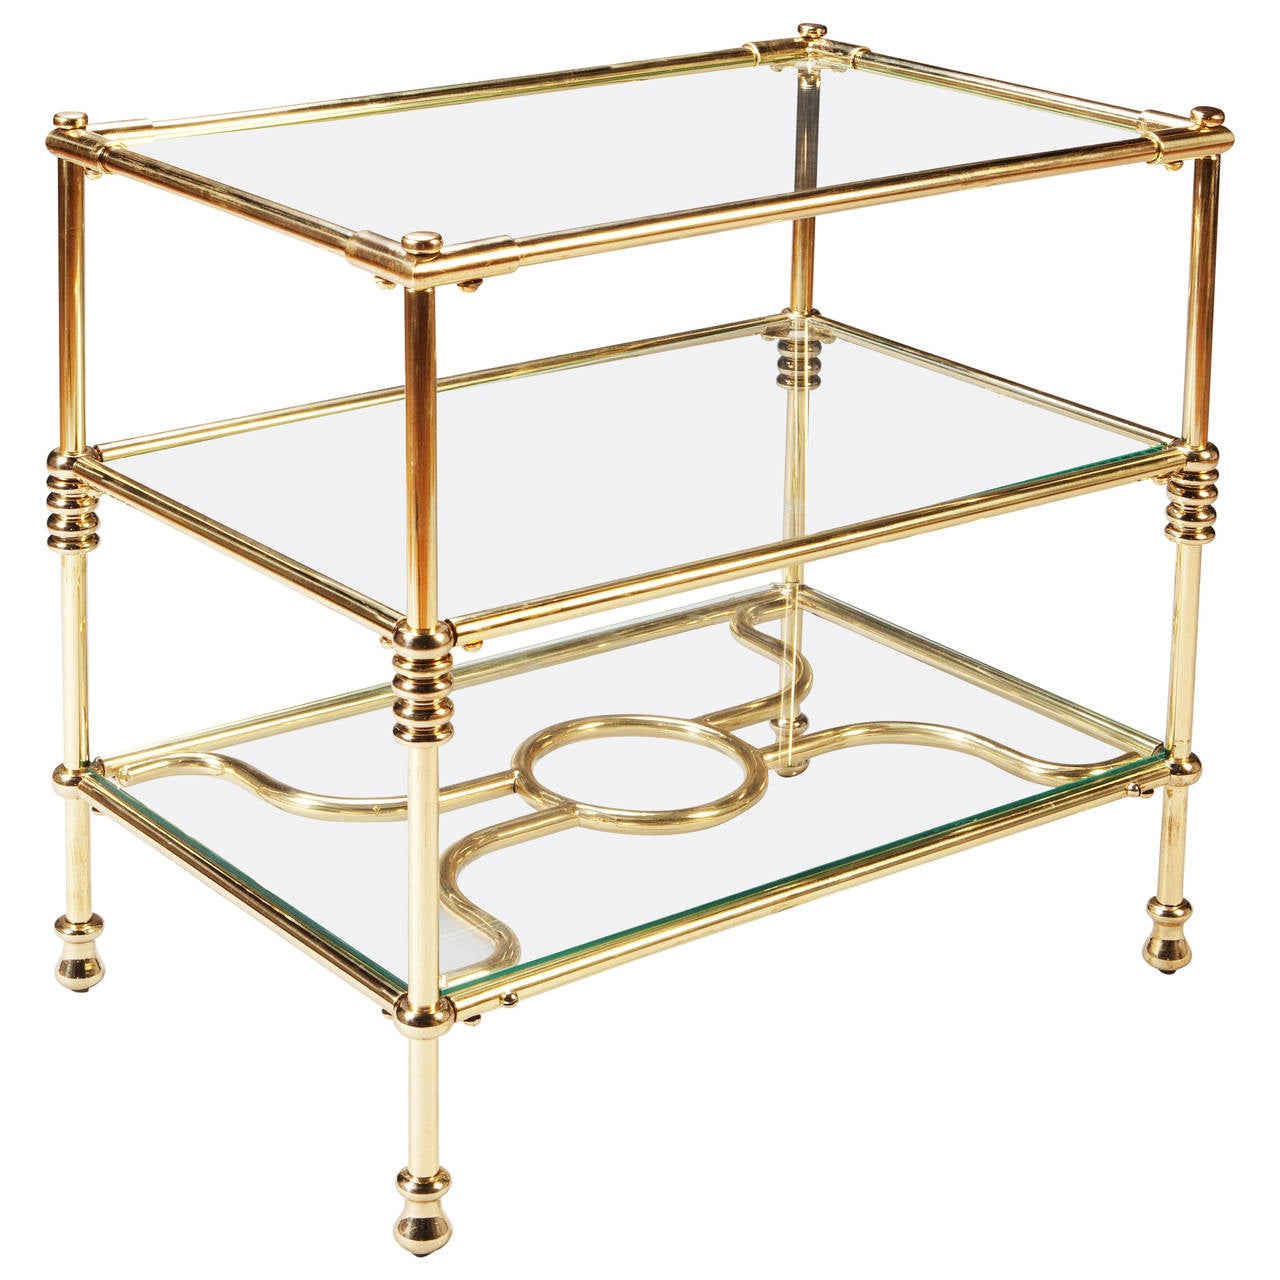 fine polished brass three tiered etagere side cocktail table for sale at 1stdibs. Black Bedroom Furniture Sets. Home Design Ideas